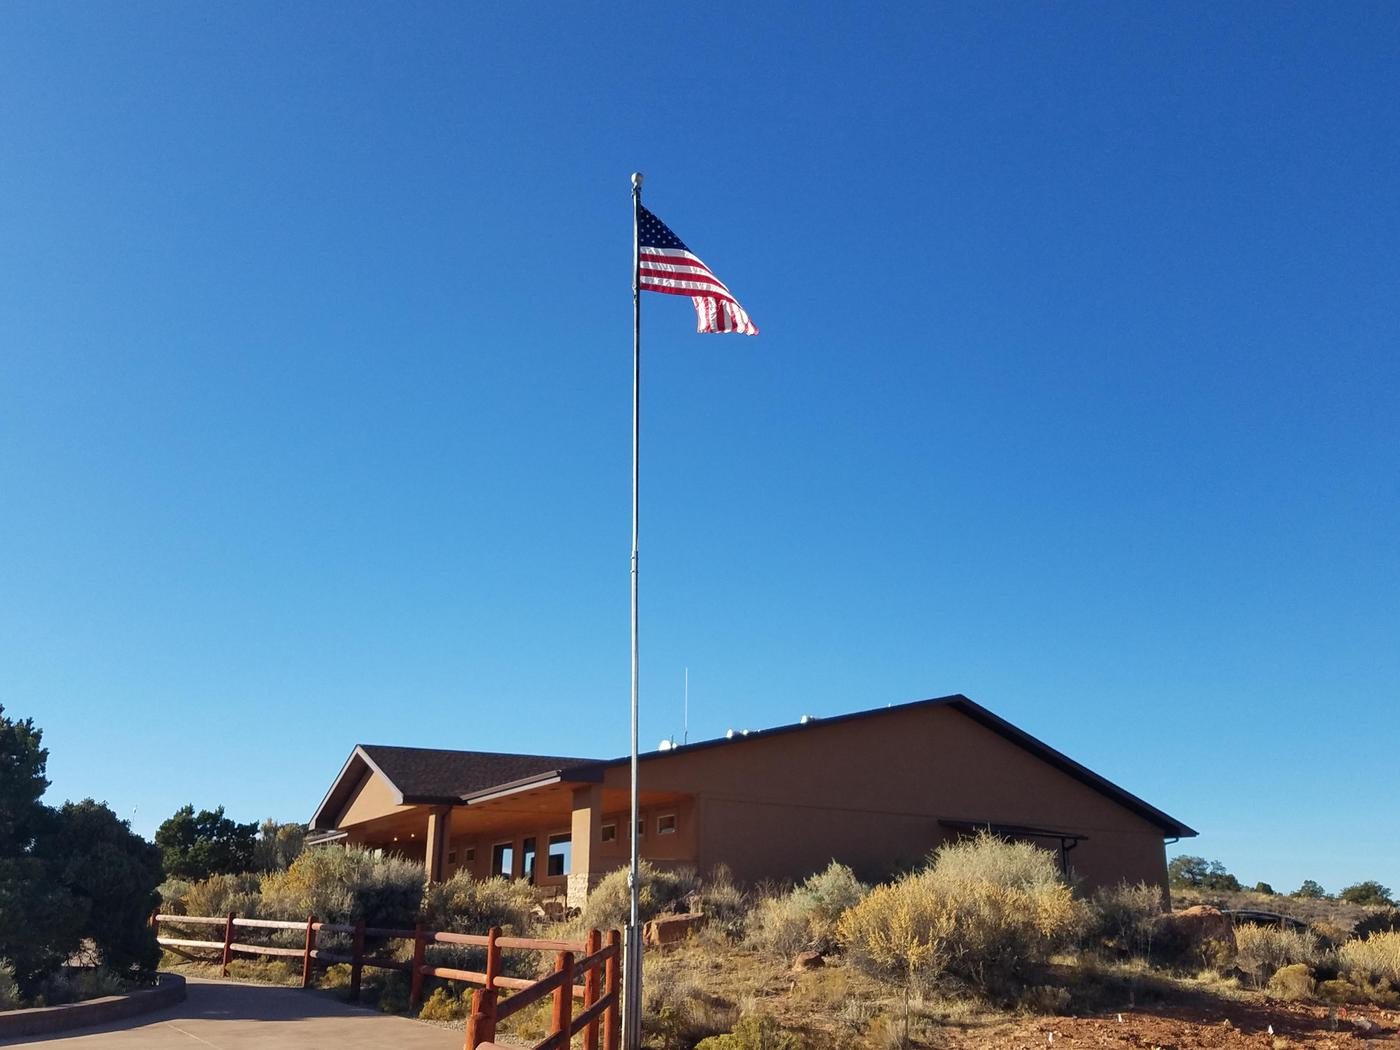 Island in the Sky Visitor Center